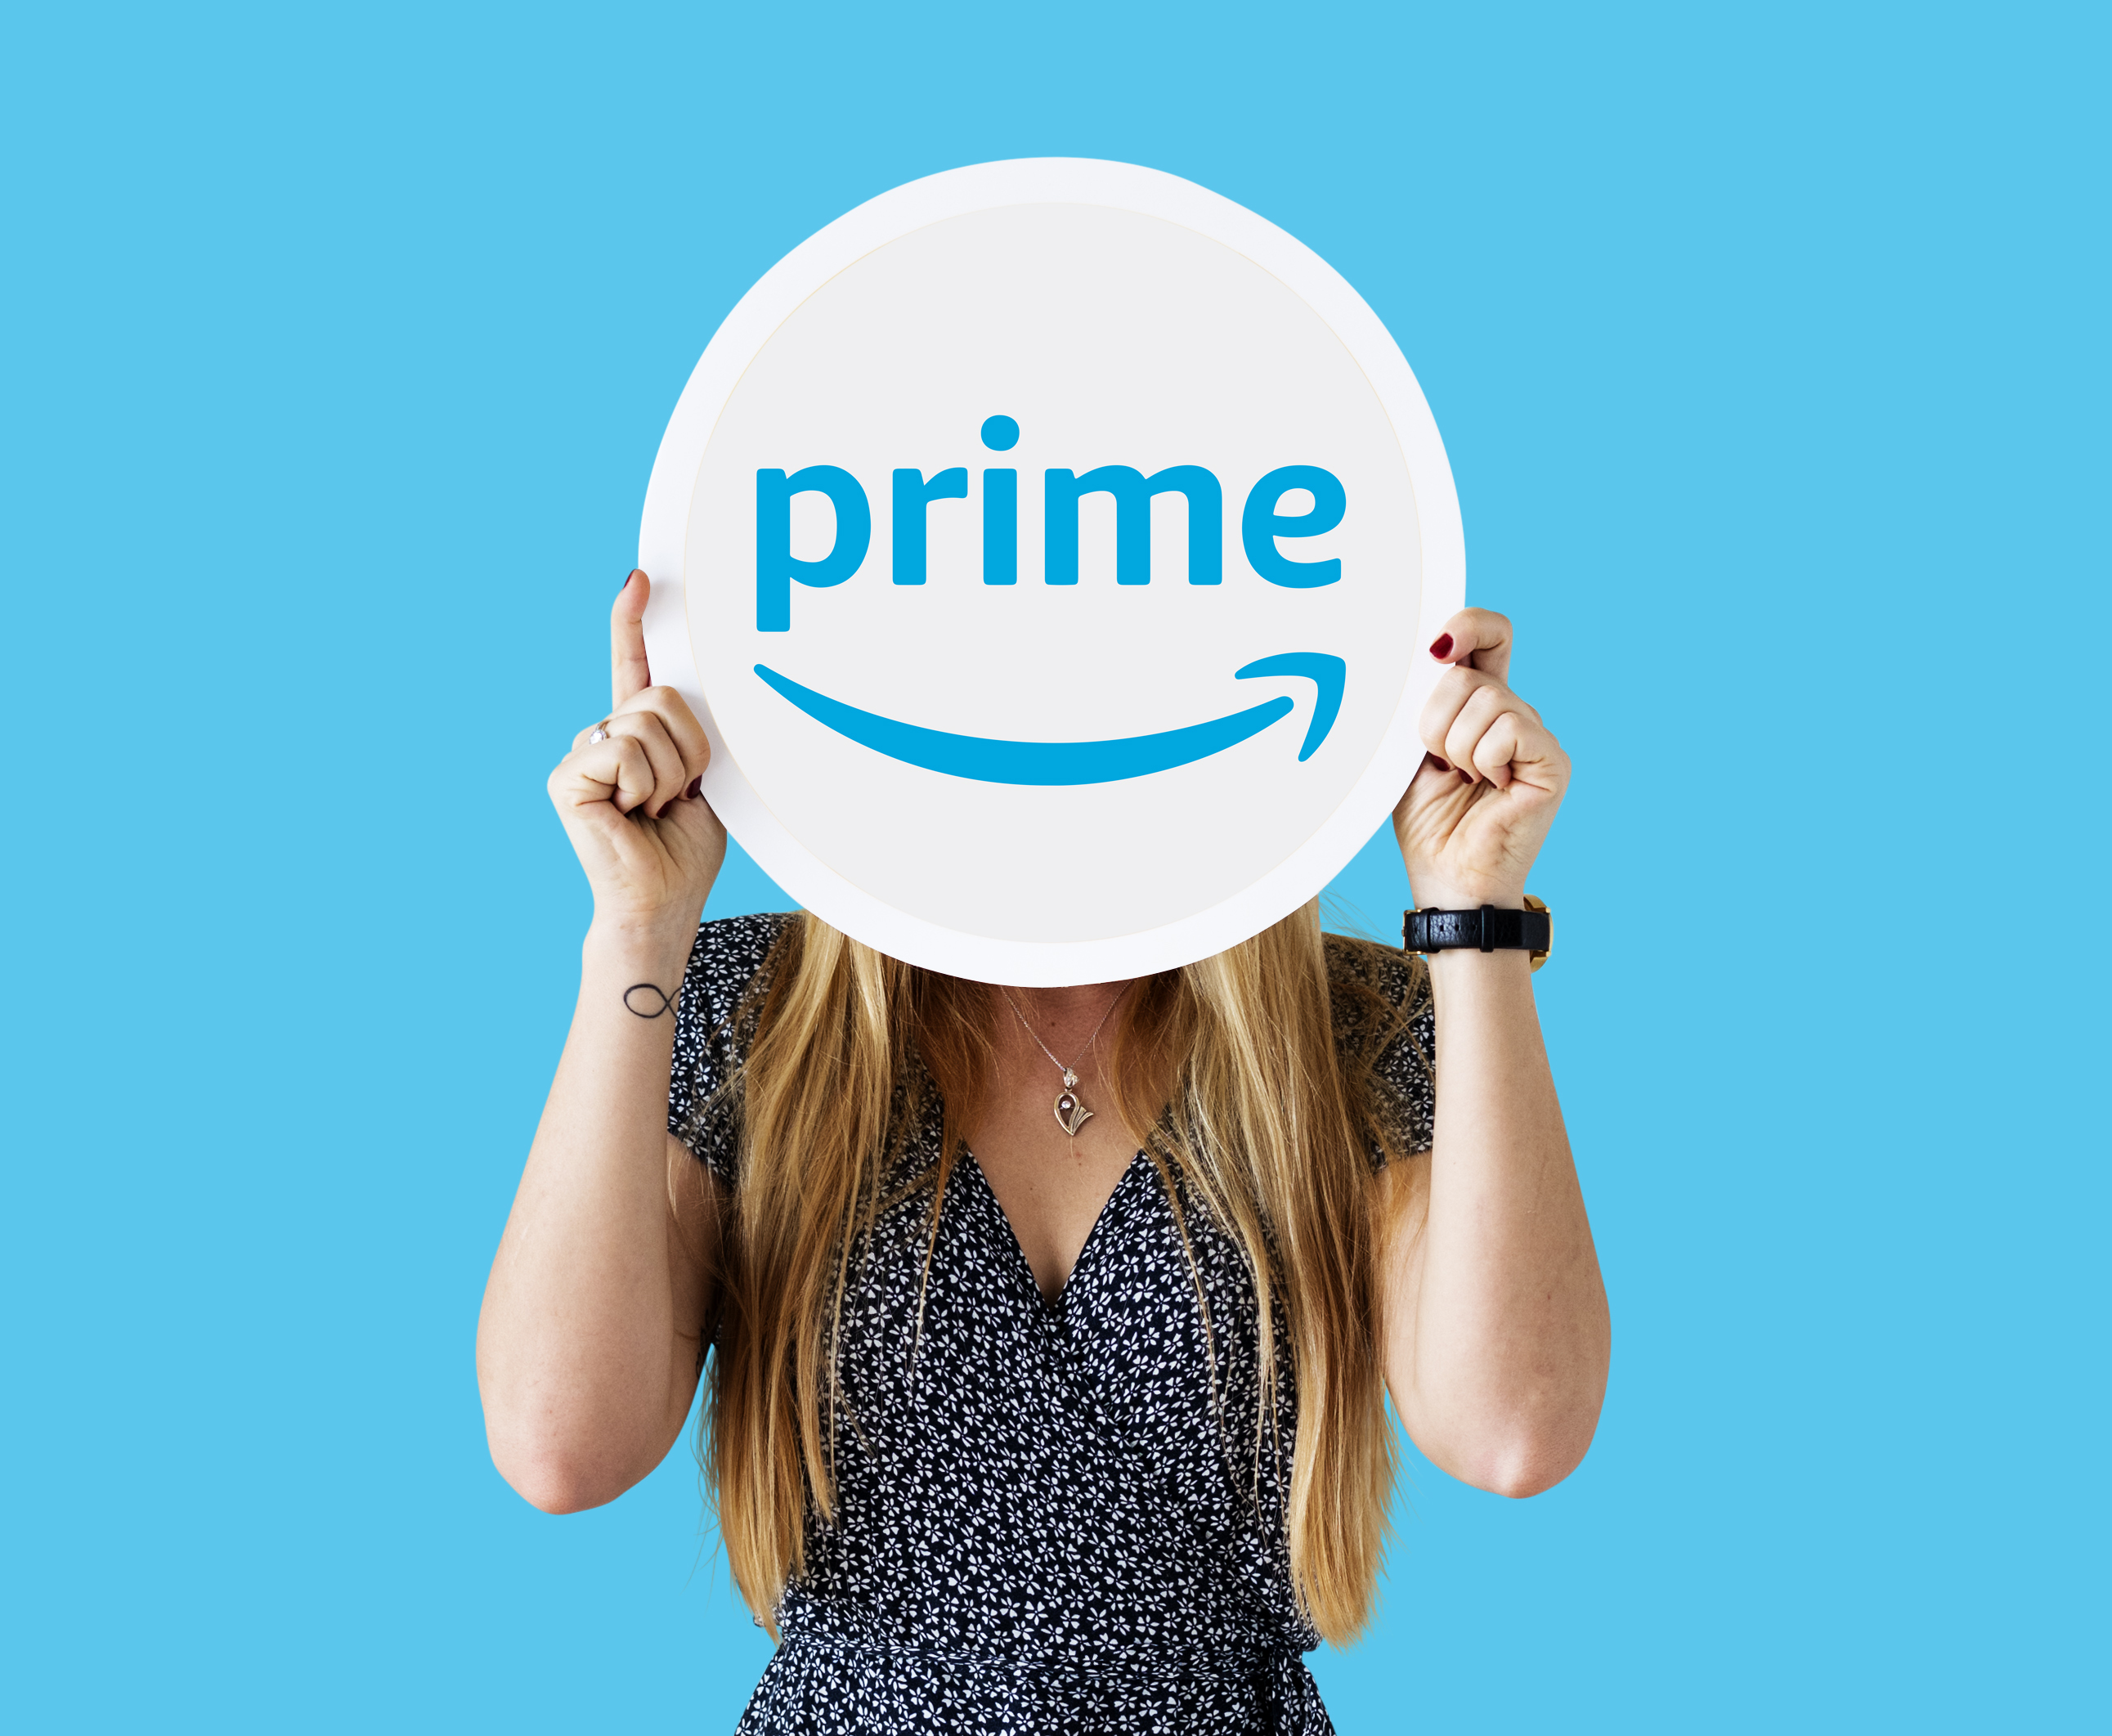 prime on Amazon saves you money